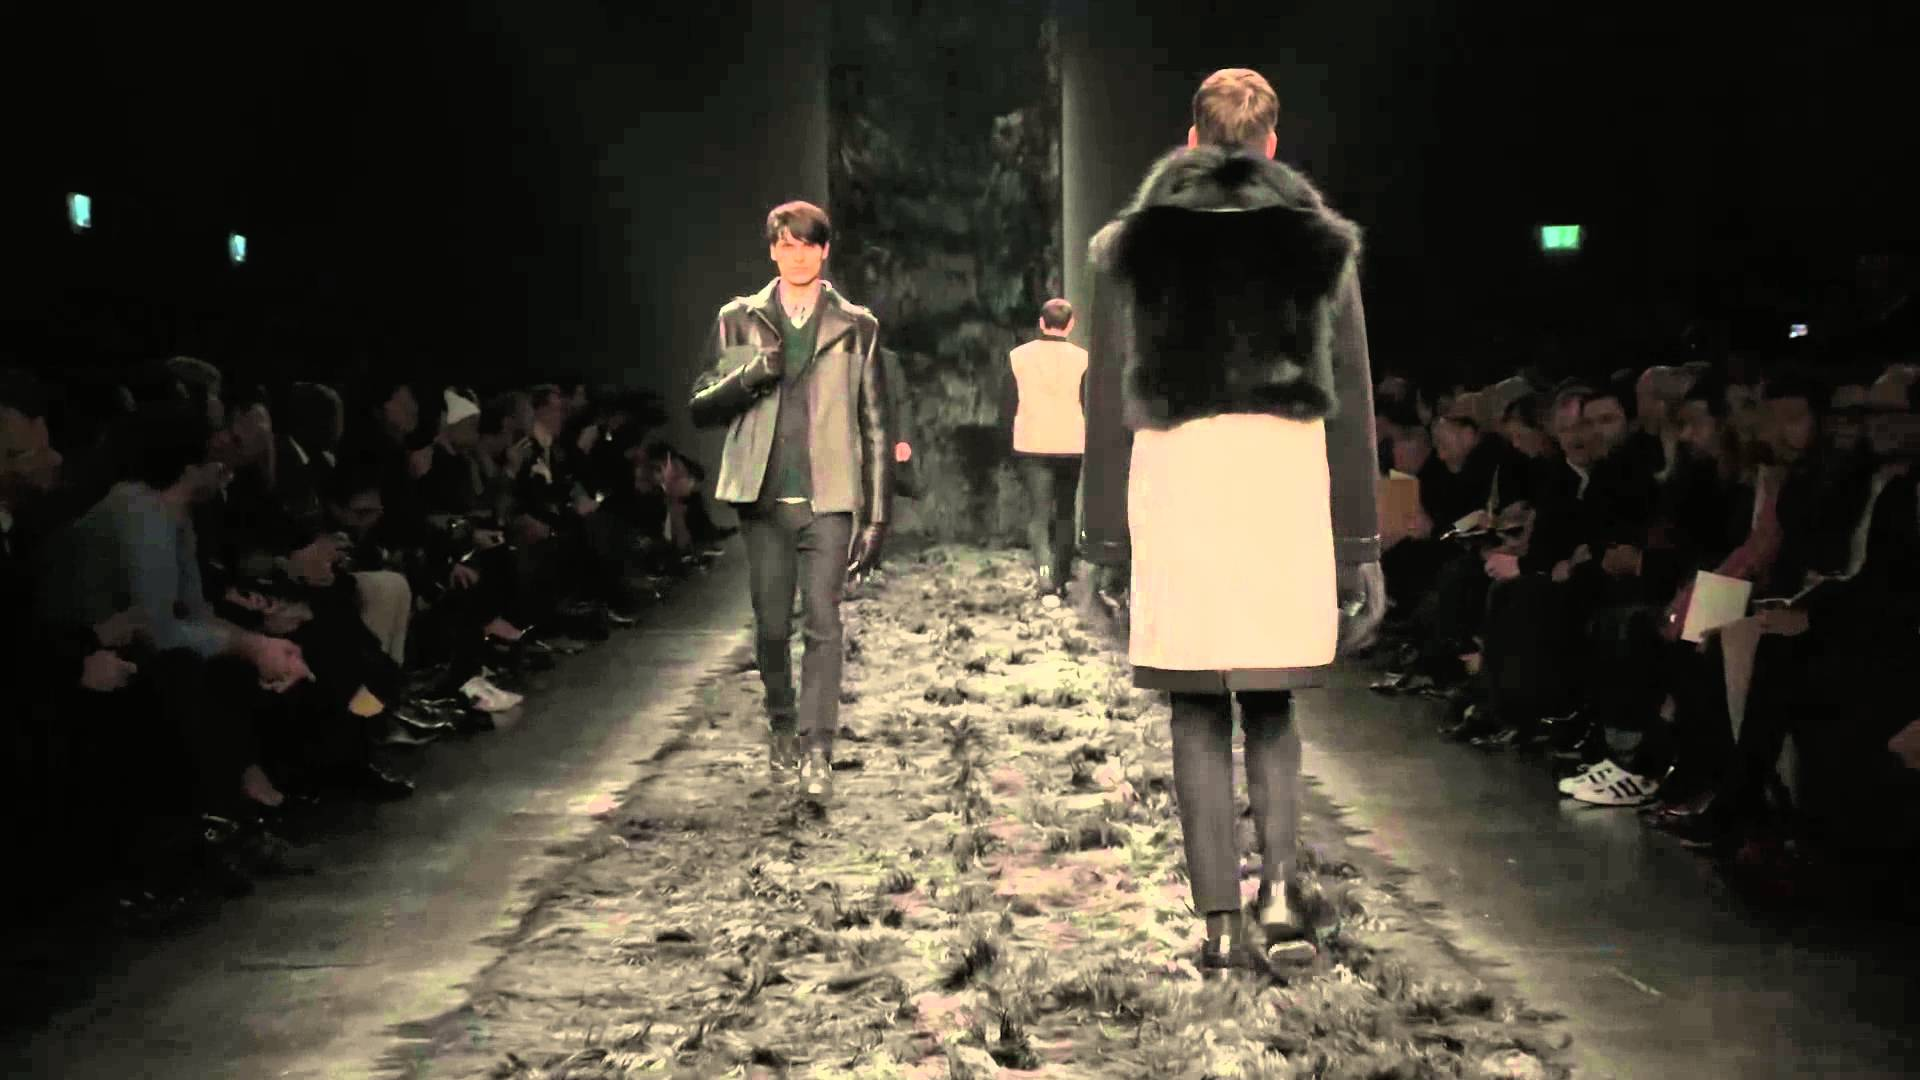 Emboding a modern urban metamorphosis, the Fendi Men's Fall/Winter 2014-15 collection is now unveiled. More on fendi.com